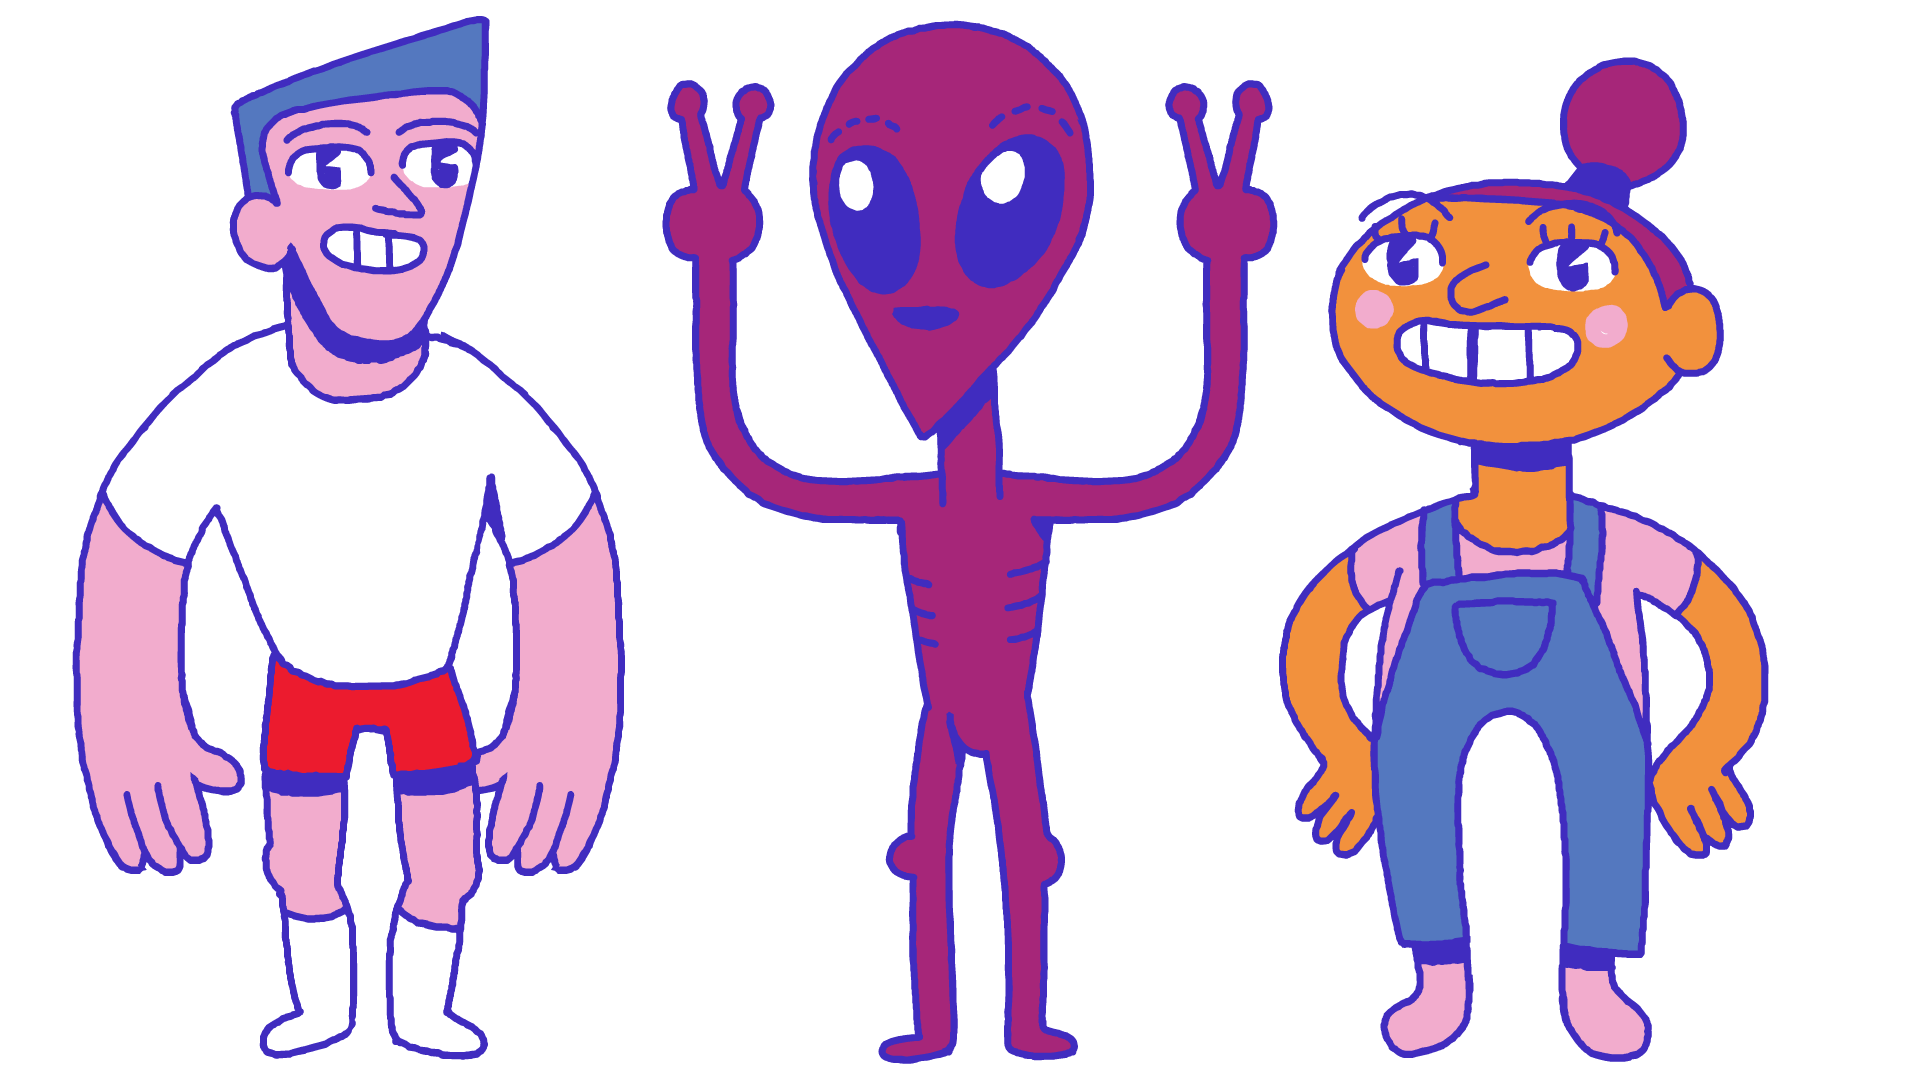 Trampoline_Characters